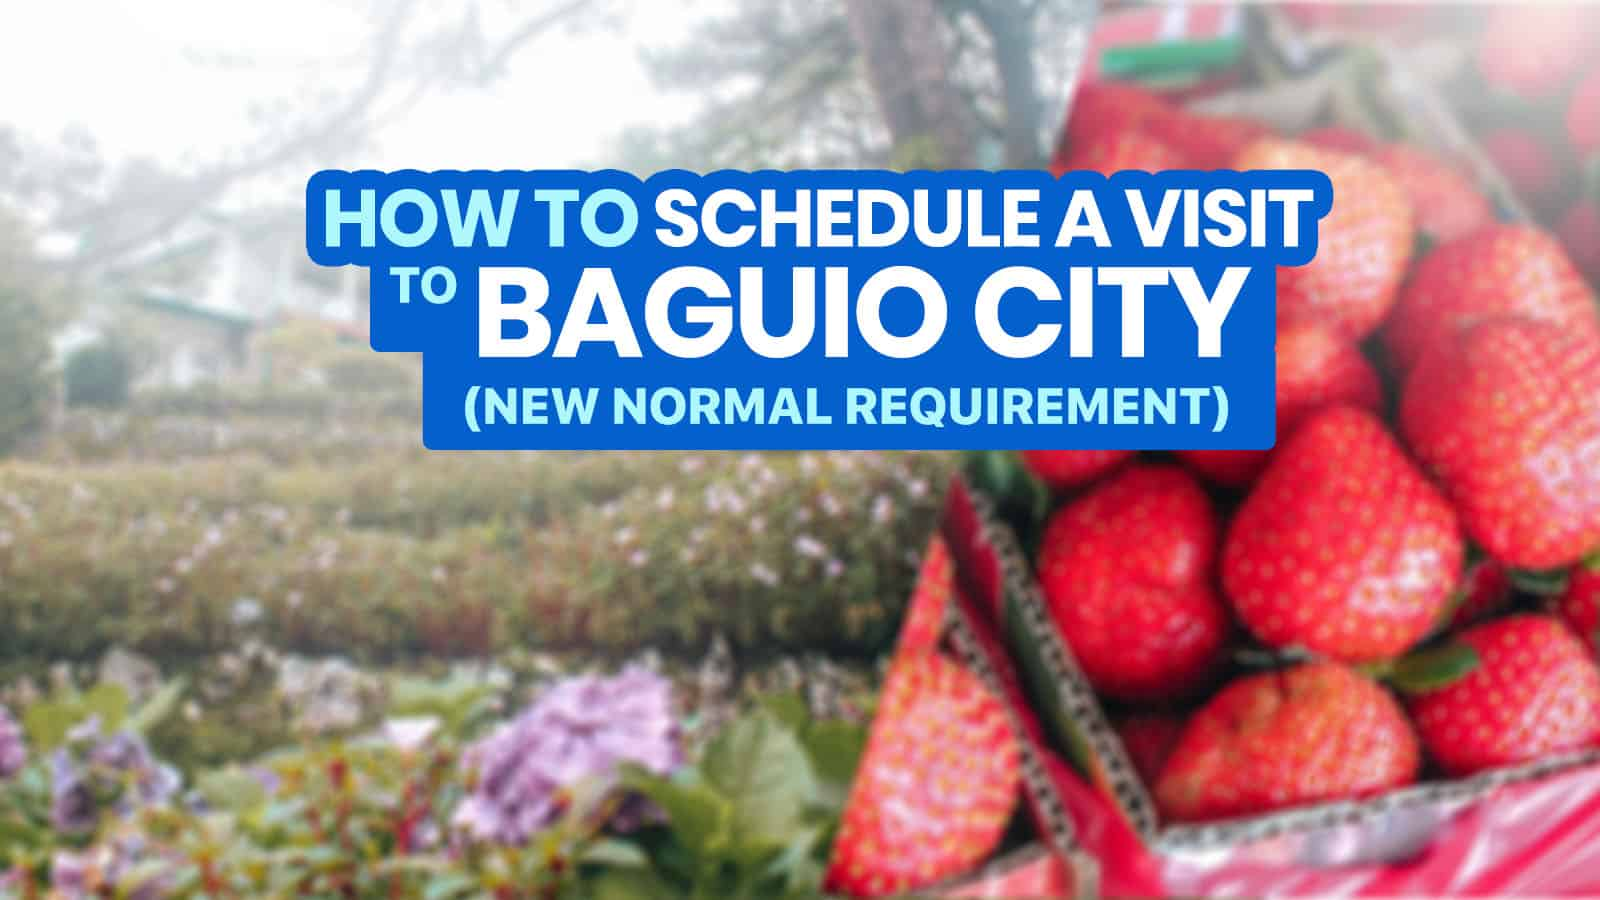 How to SCHEDULE A VISIT via BAGUIO VISITA 2021: Step-by-Step Online Registration Guide